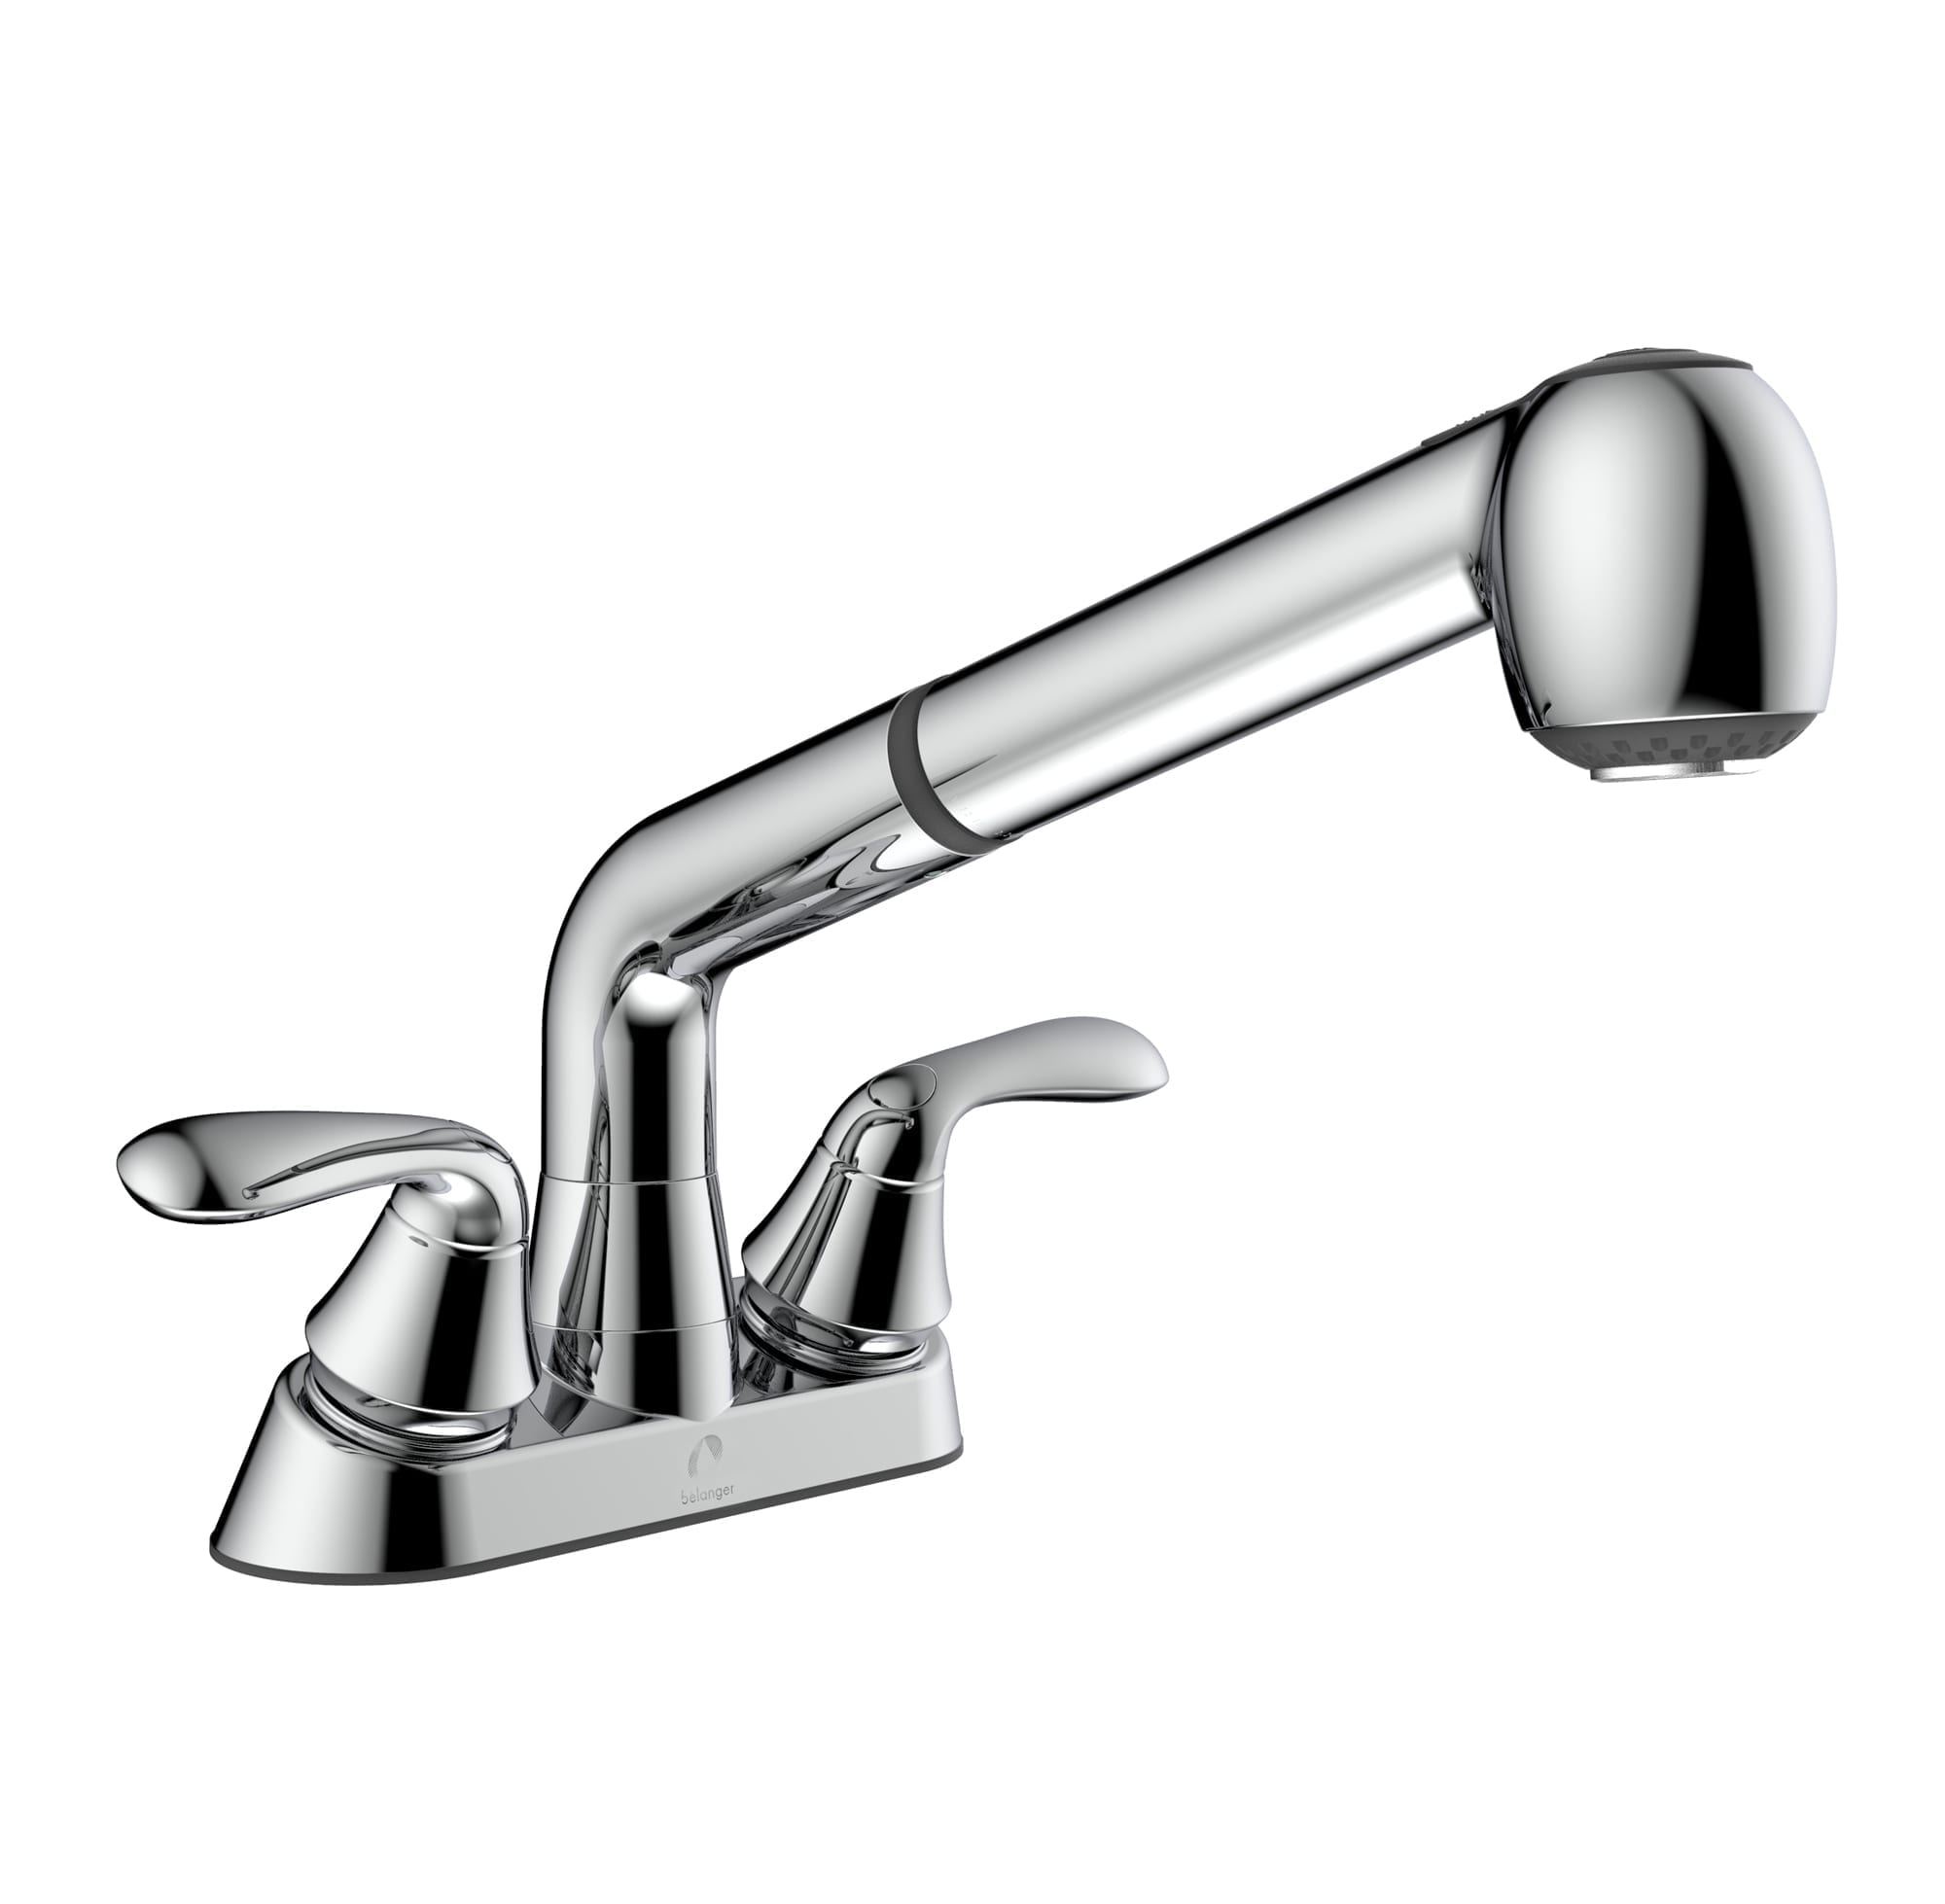 sprayer decorating home faucets sink and with delta pull faucet utility laundry out spray tub sinks